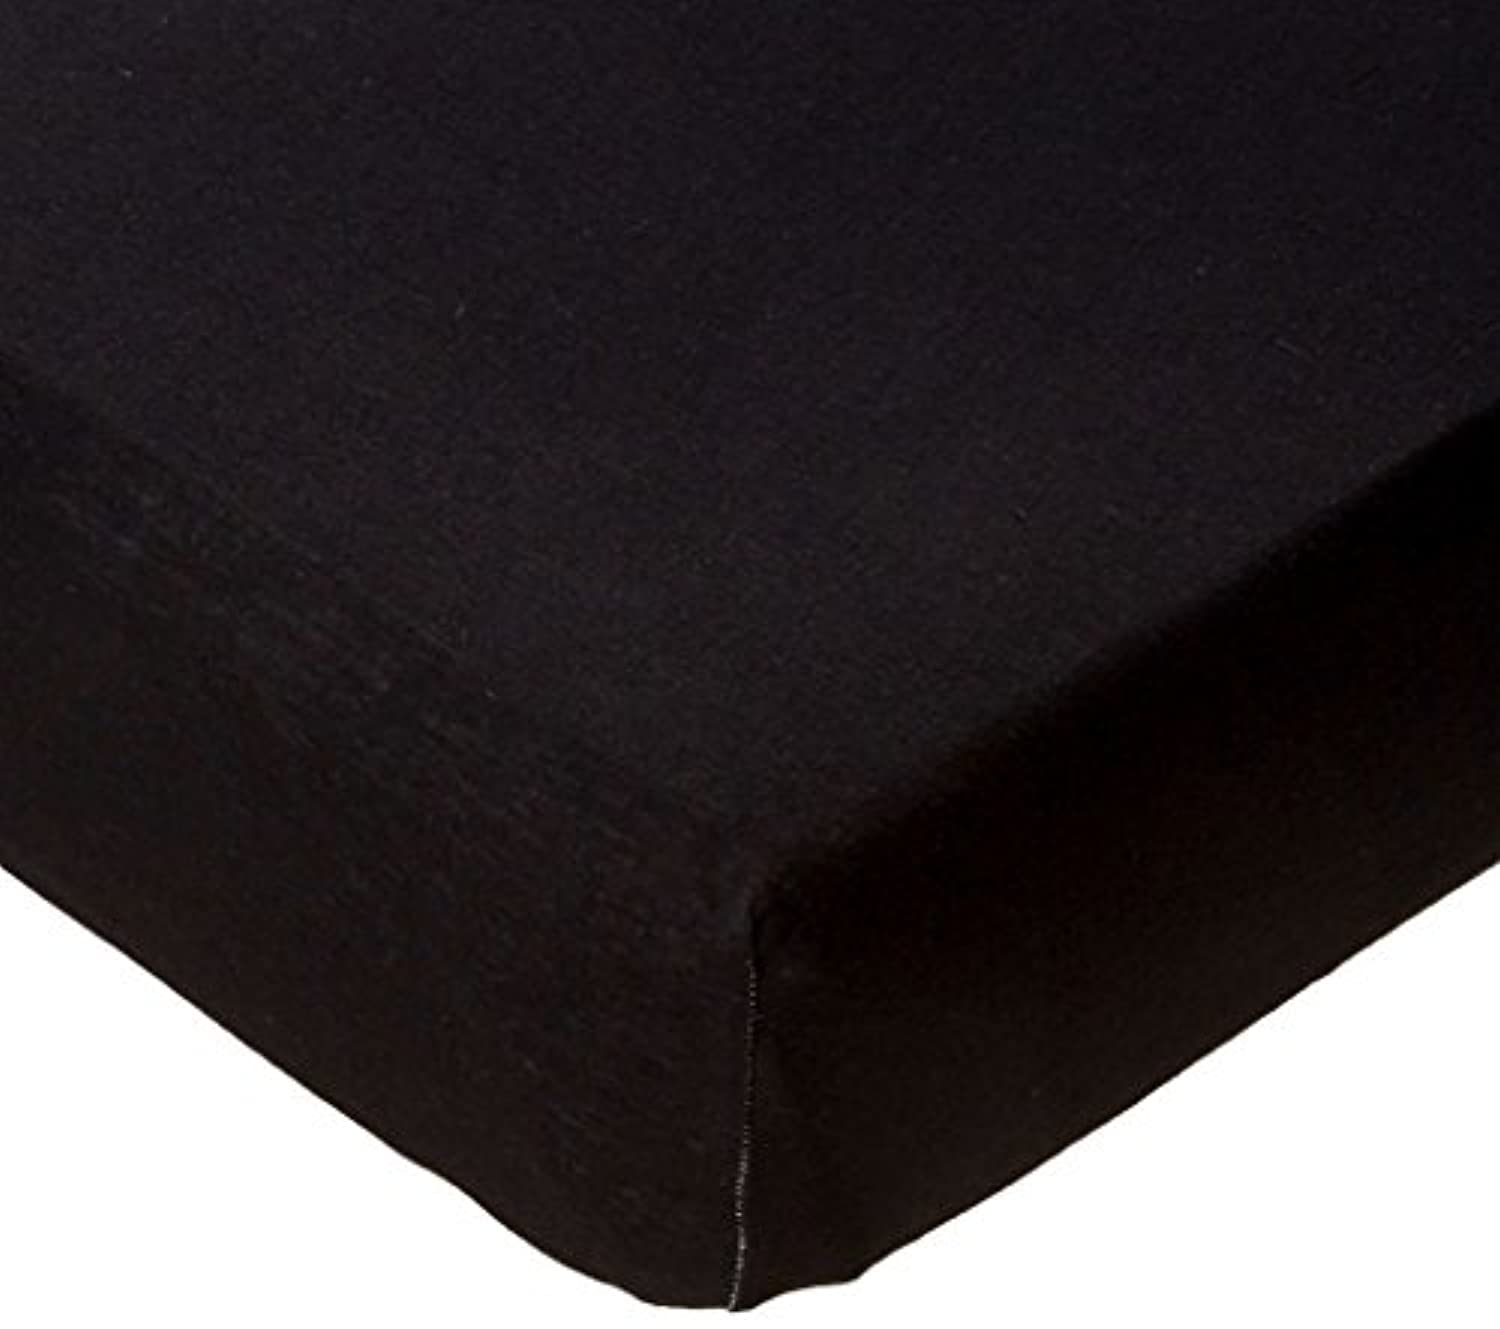 SheetWorld Fitted Portable / Mini Crib Sheet - Solid Black Jersey Knit - Solid Colors by sheetworld